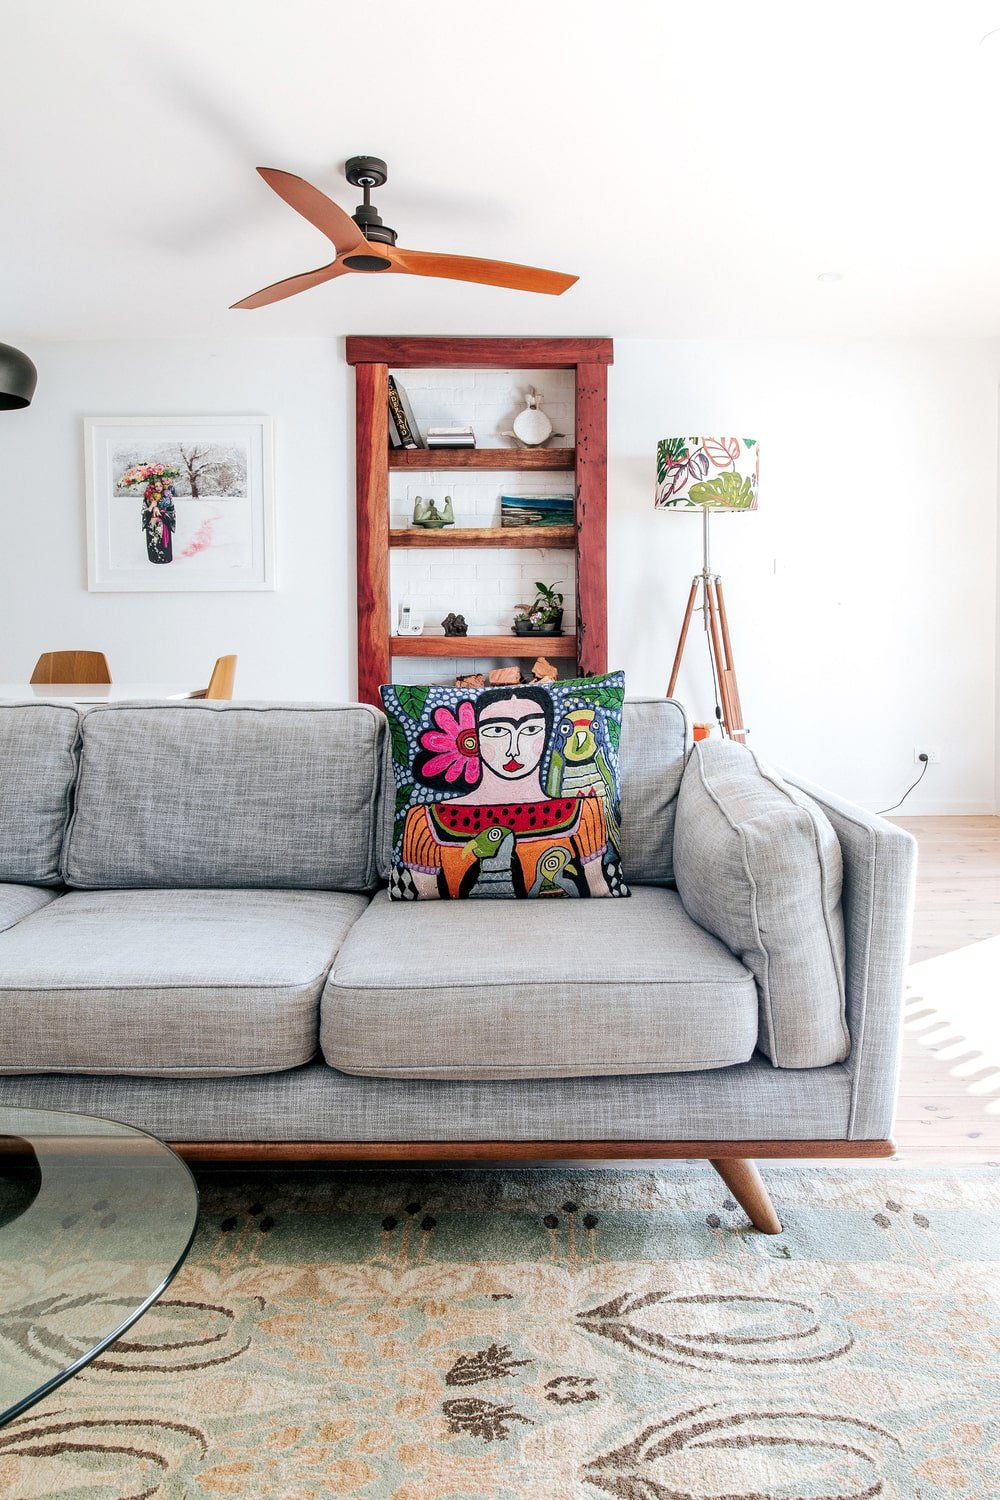 A closer look at the gray sofa reveals that it also has wooden legs like the armchair. This also matches with the built-in wooden shelf on the far wall behind the sofa.